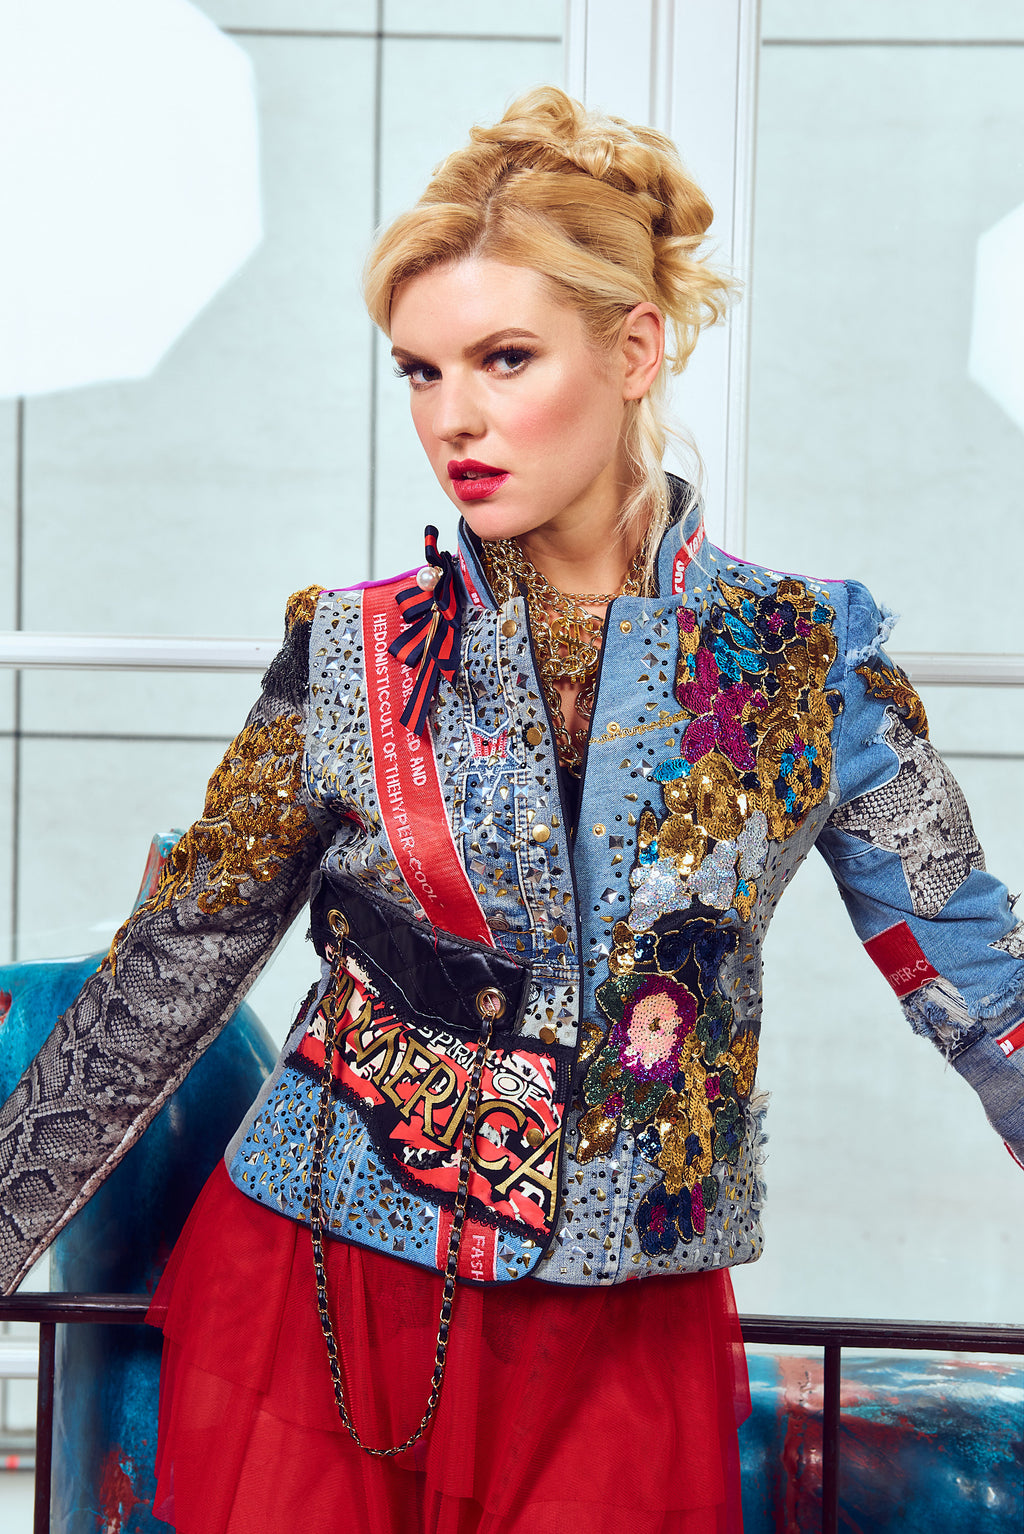 PIA BOLTE®Jeans Jacket Pop Art - PIA BOLTE® COUTURE